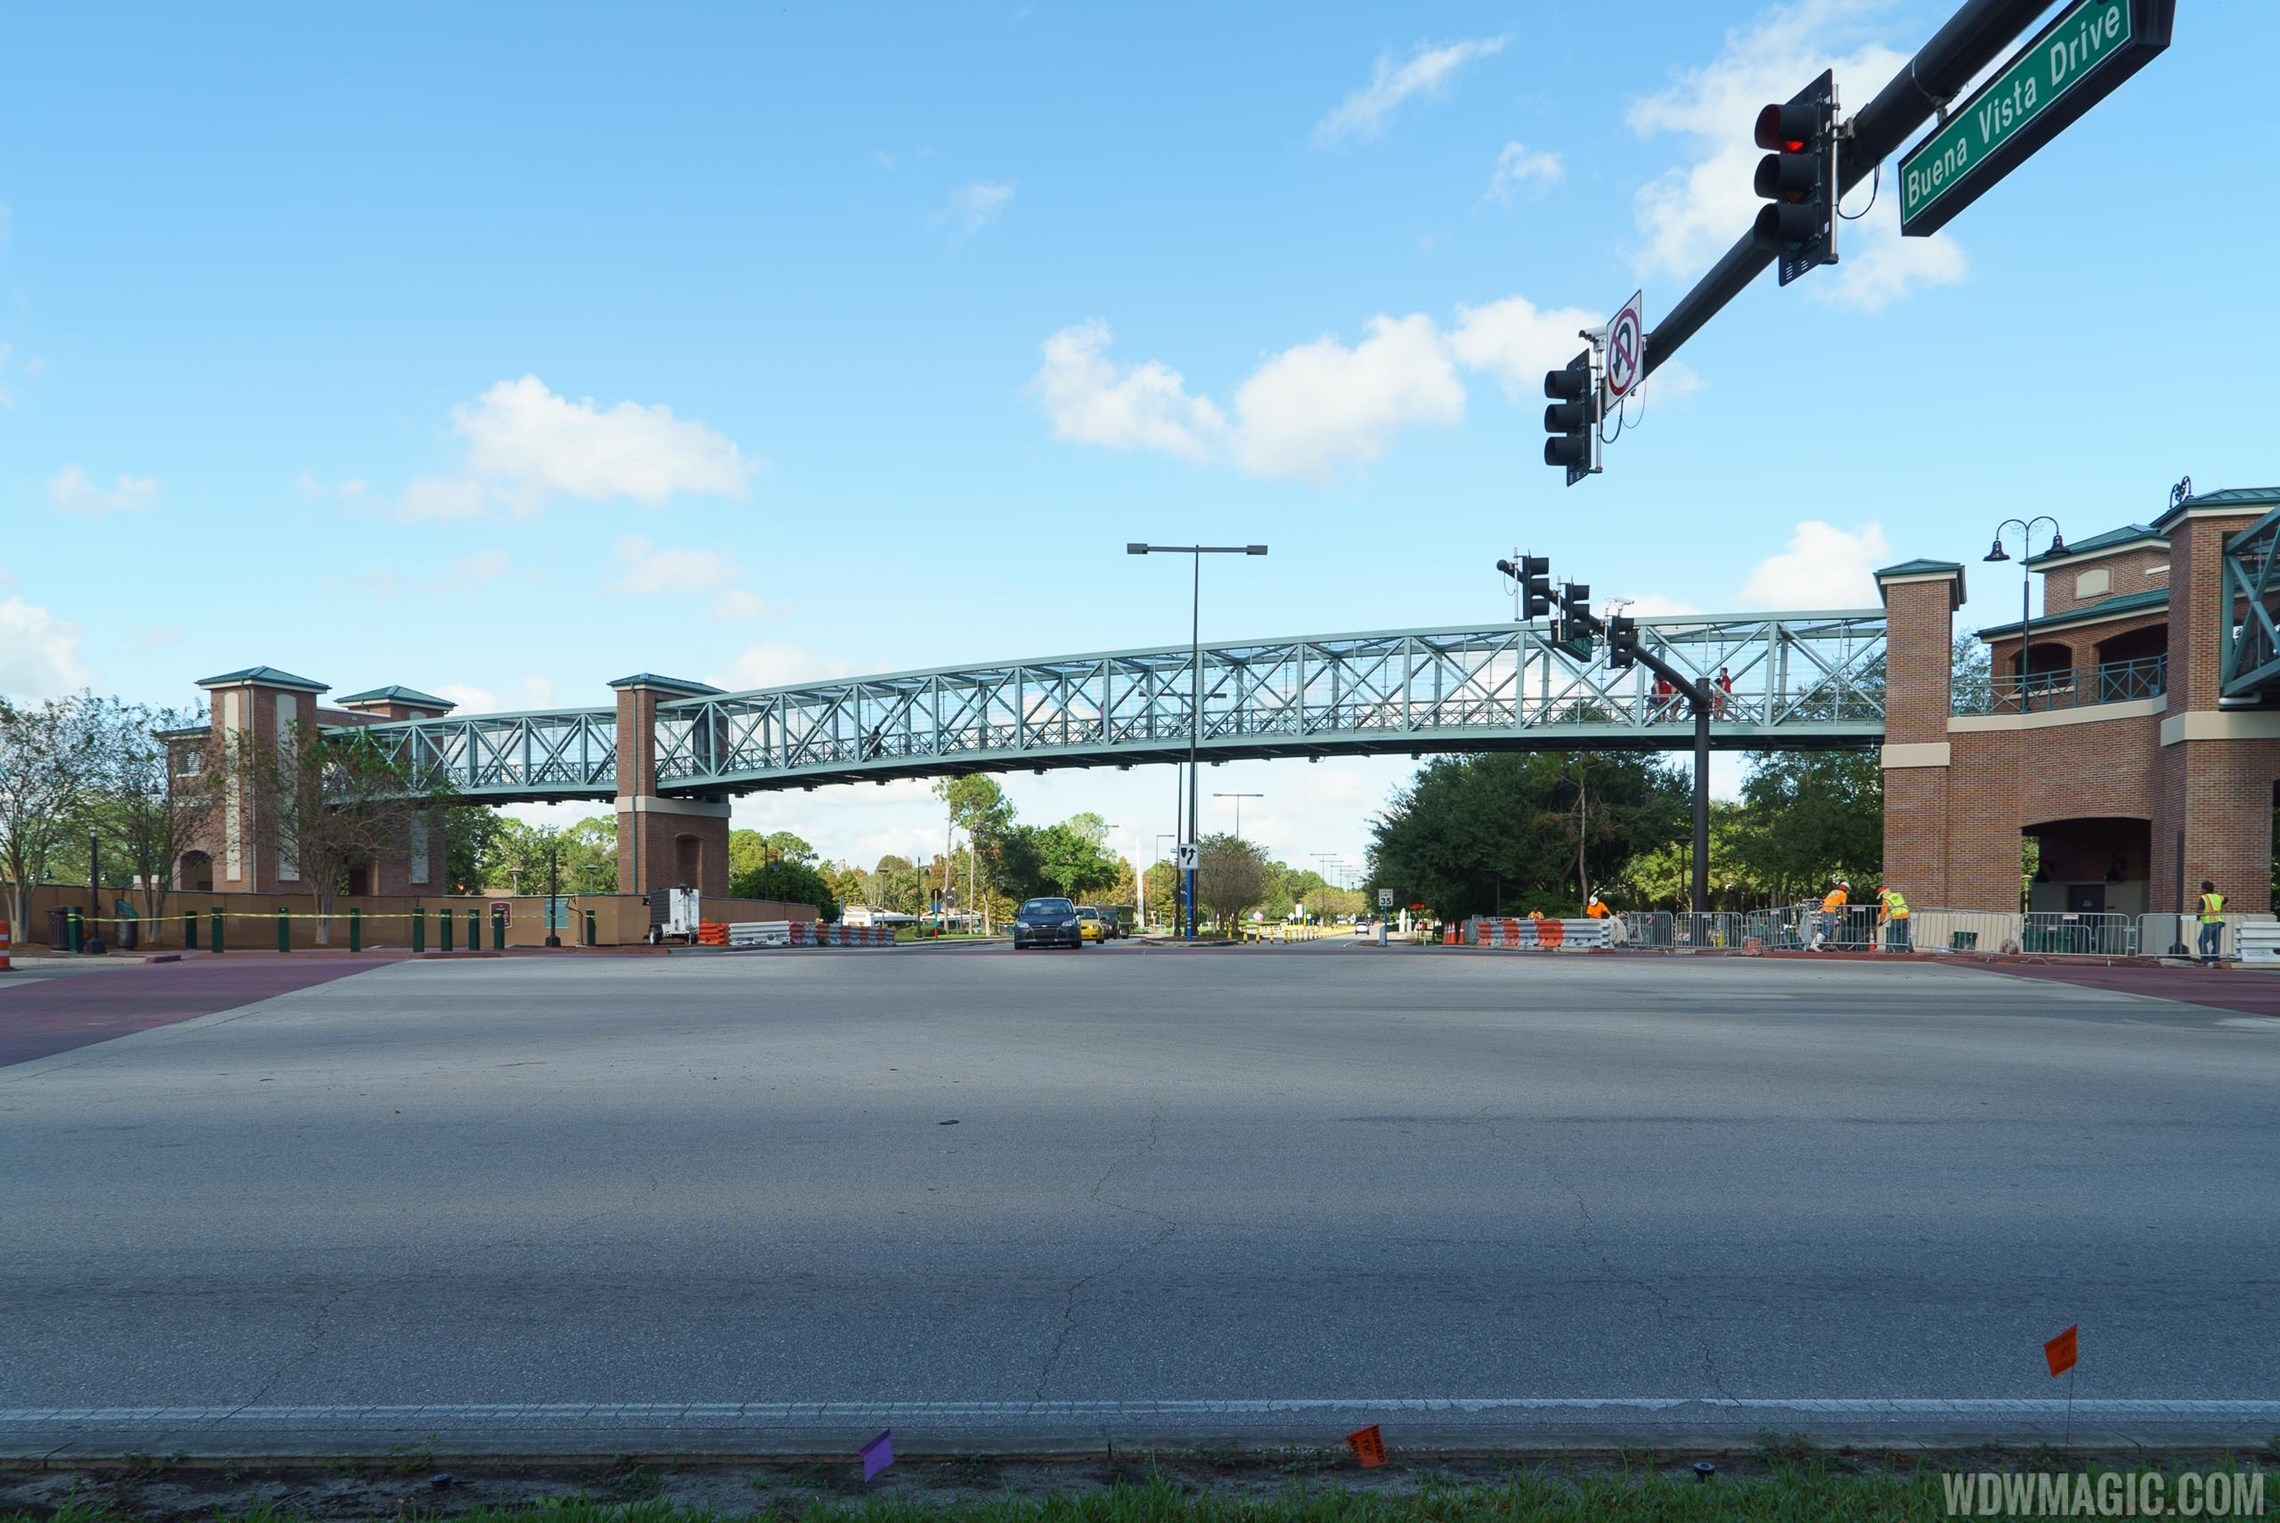 Second Disney Springs Buena Vista Drive pedestrian bridge completed